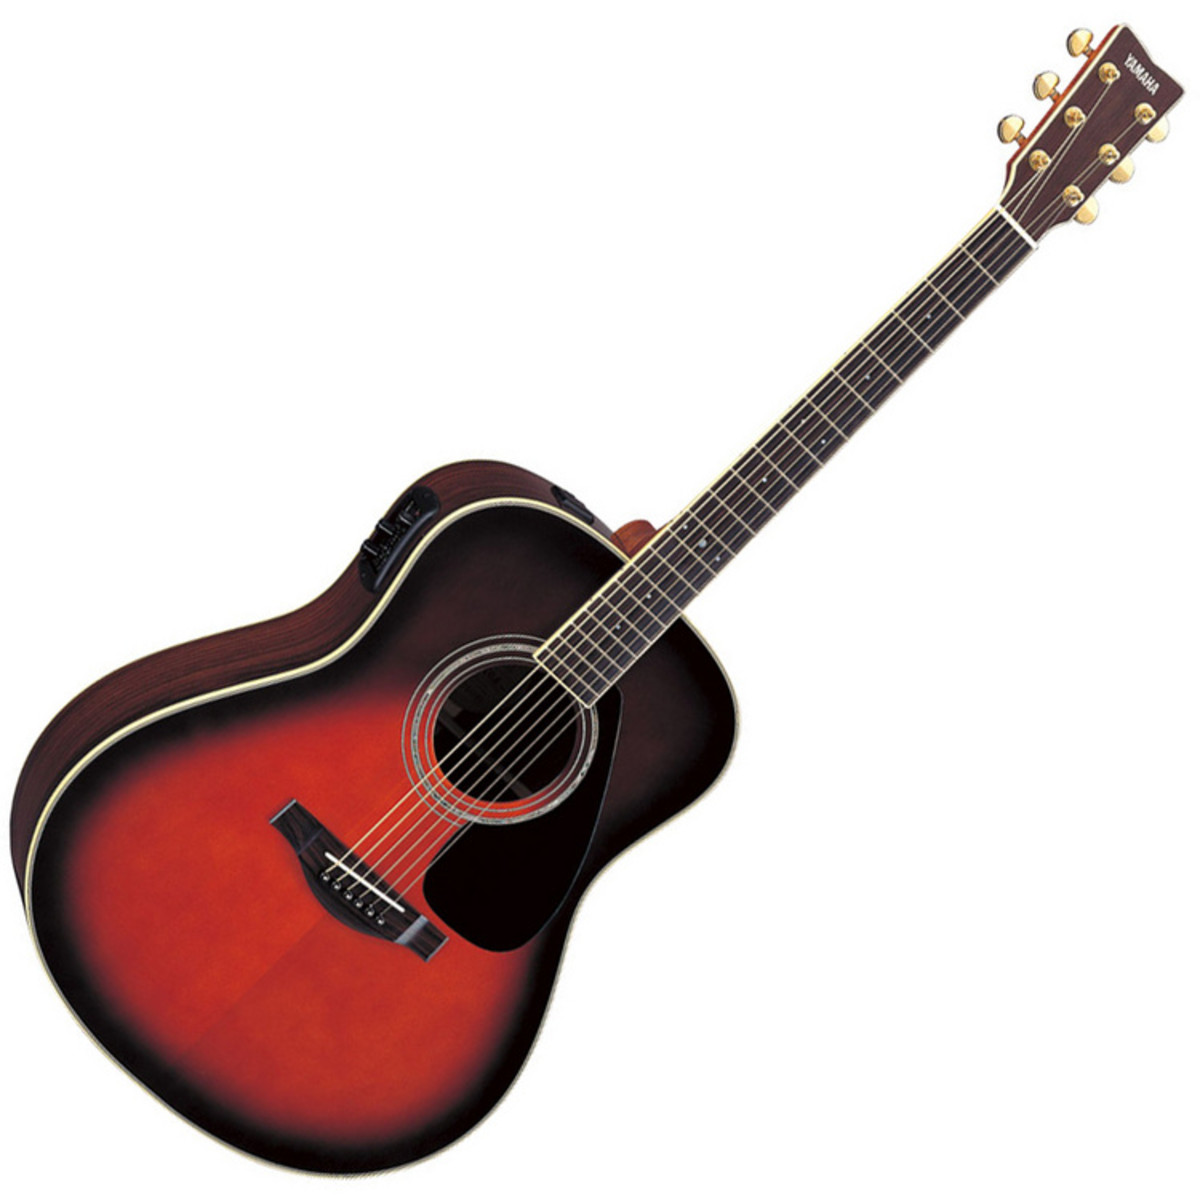 yamaha llx6a guitare electro acoustique tobacco sunburst. Black Bedroom Furniture Sets. Home Design Ideas